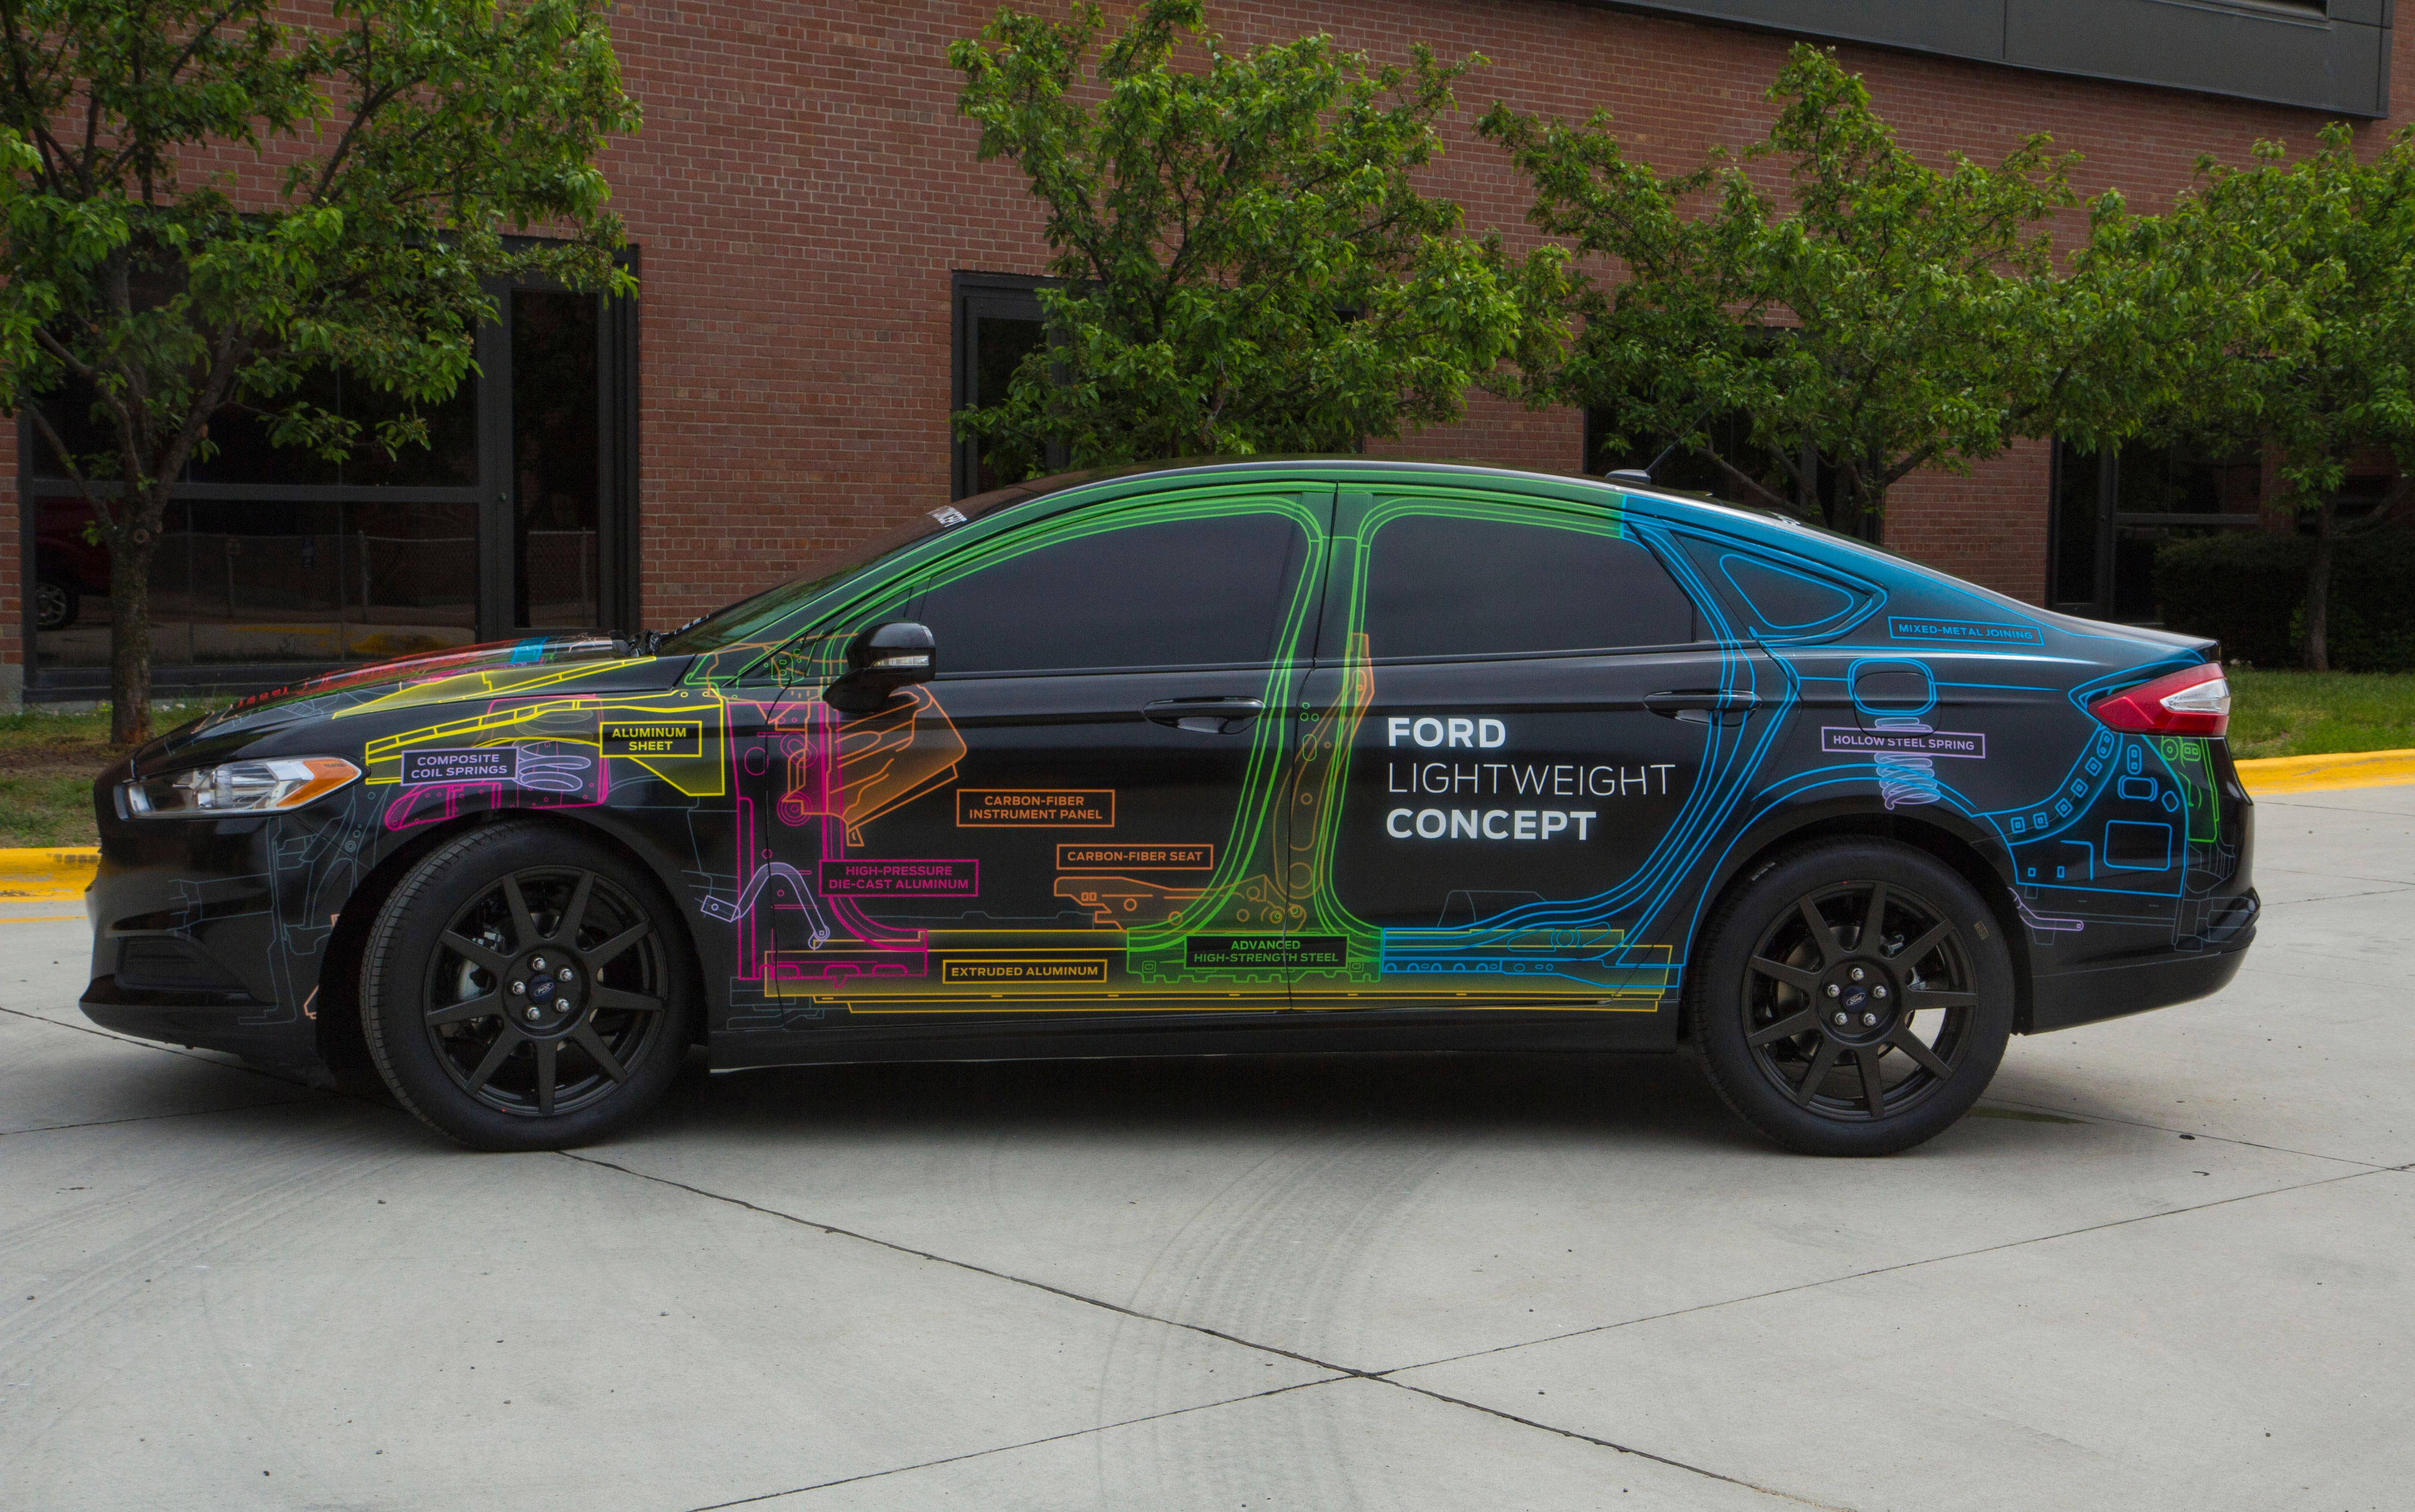 Ford_LW_Concept.jpg